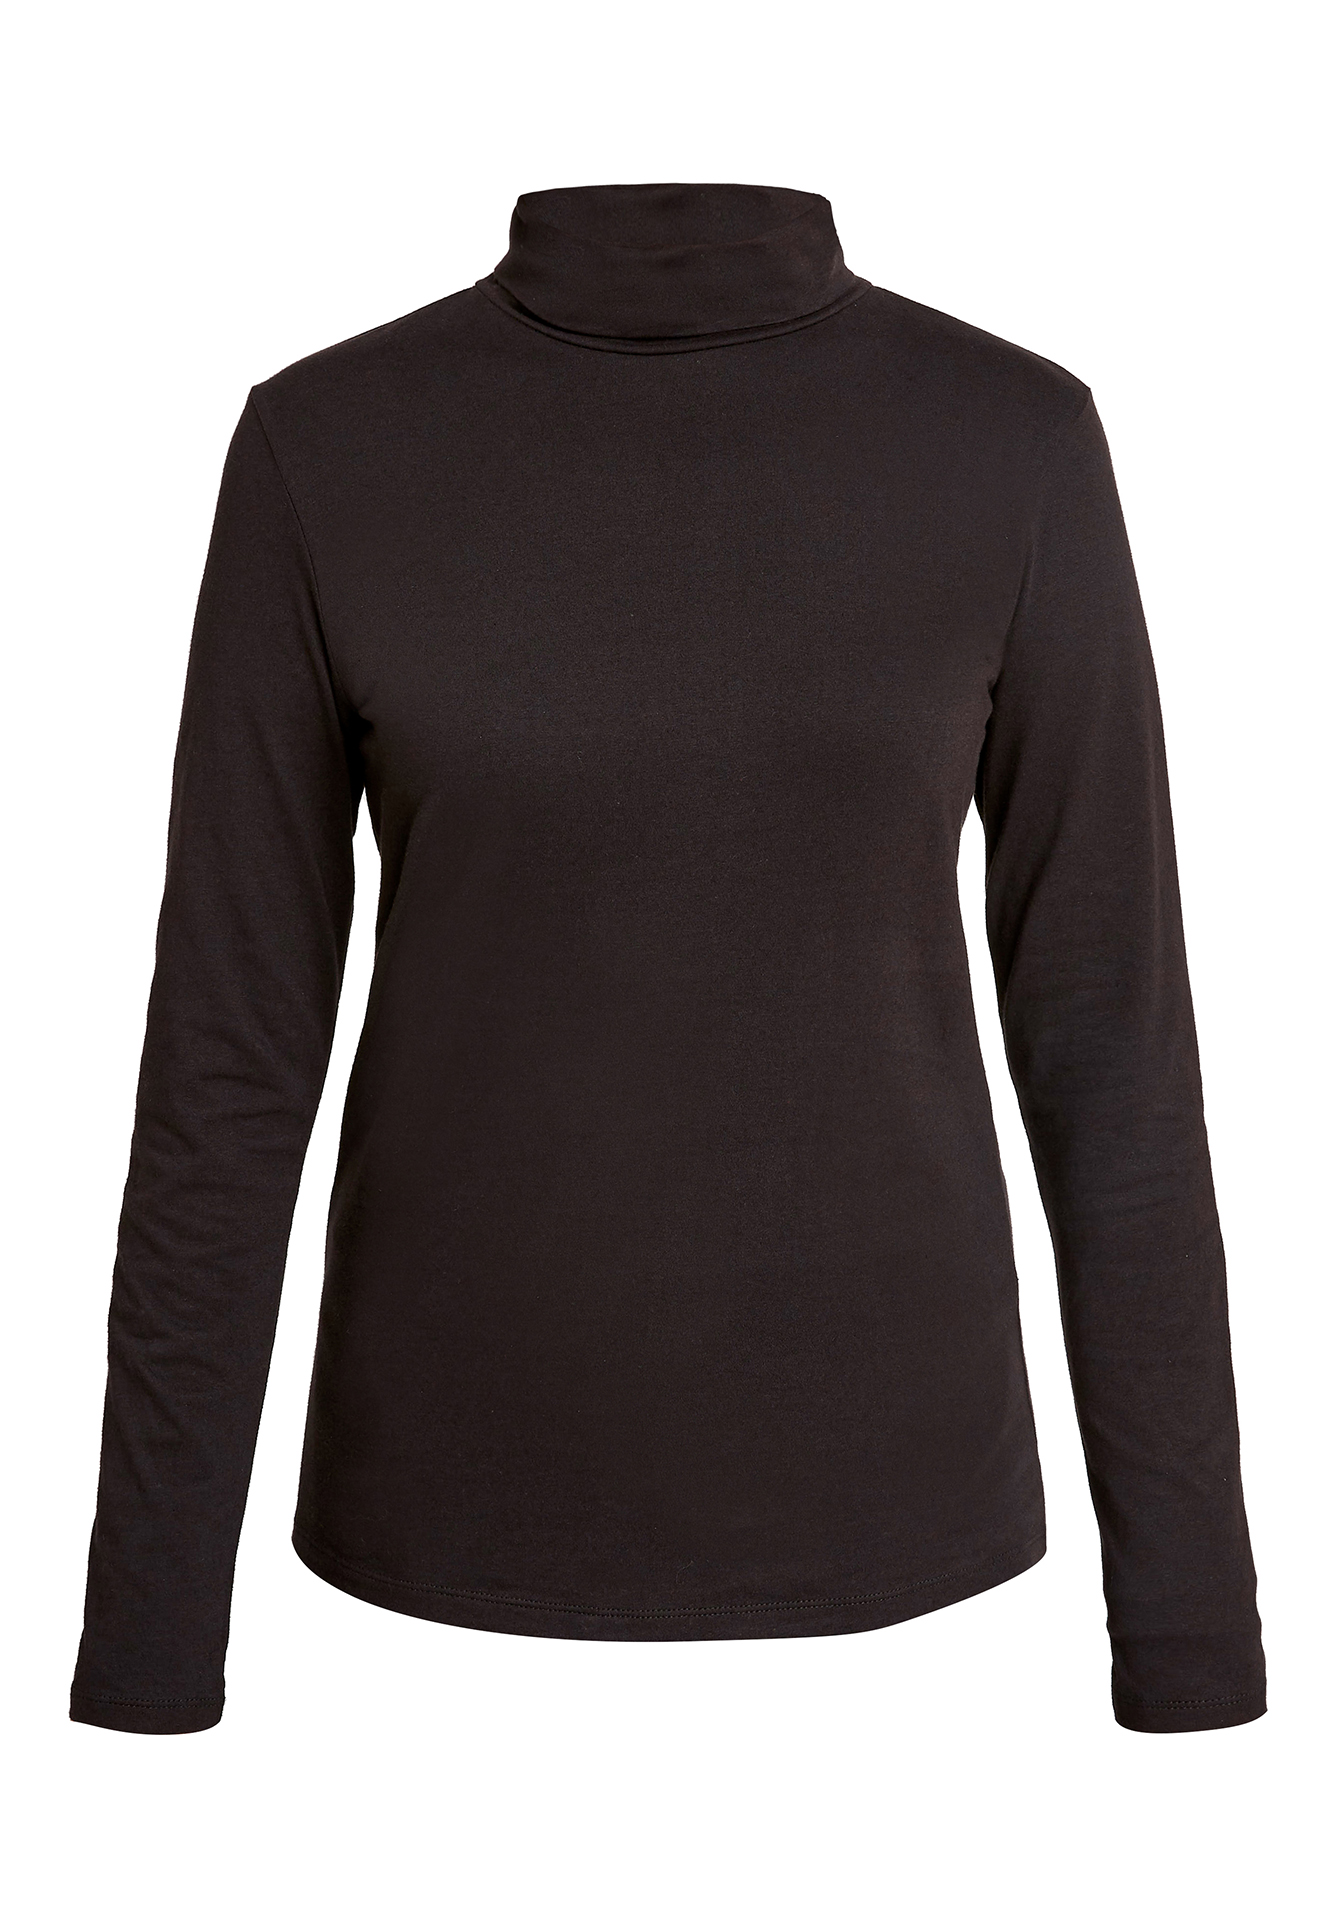 Laila Roll Neck Top in Black 16